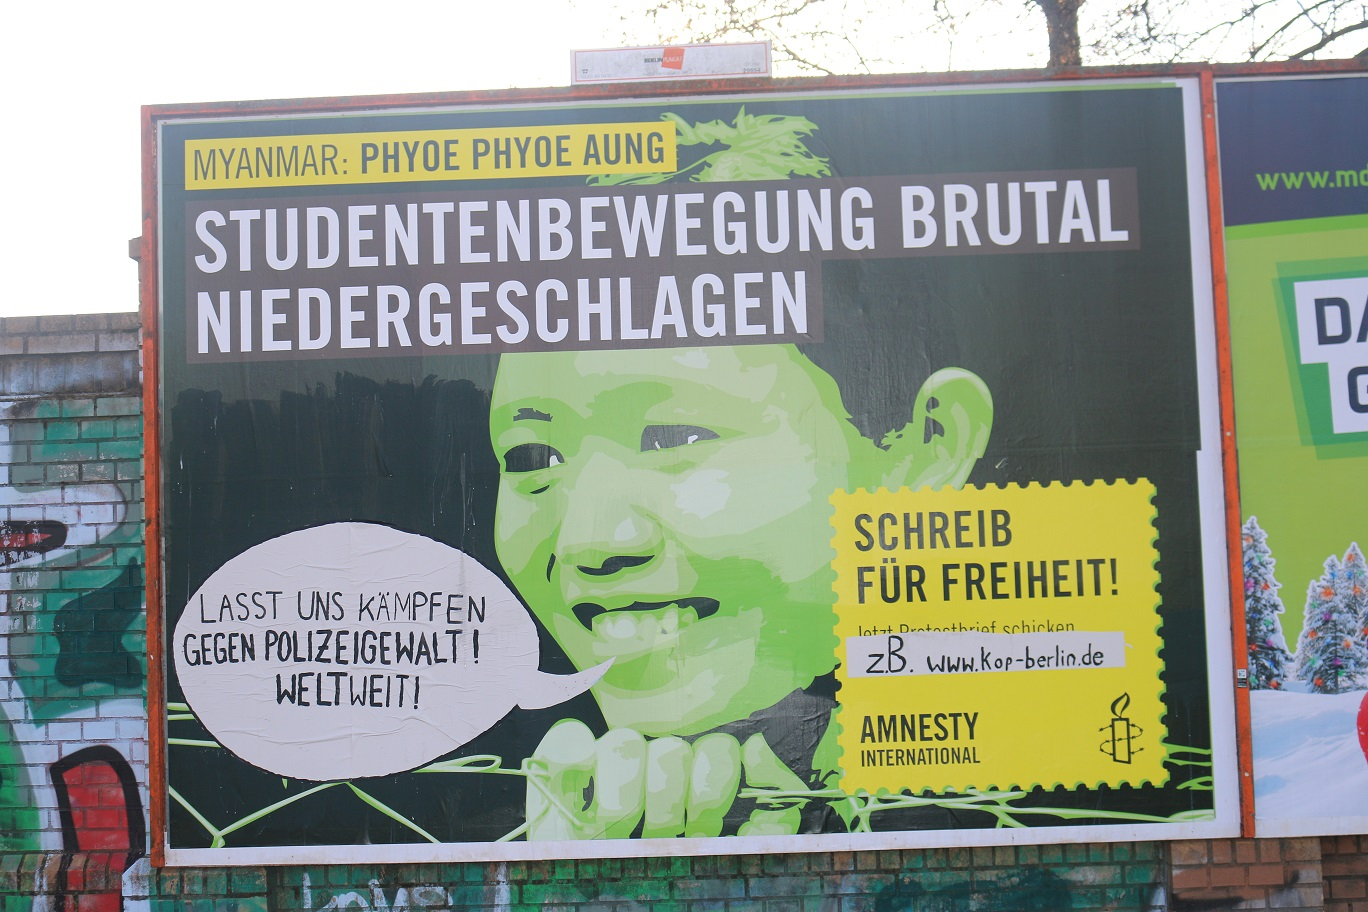 amnesty international Adbusting